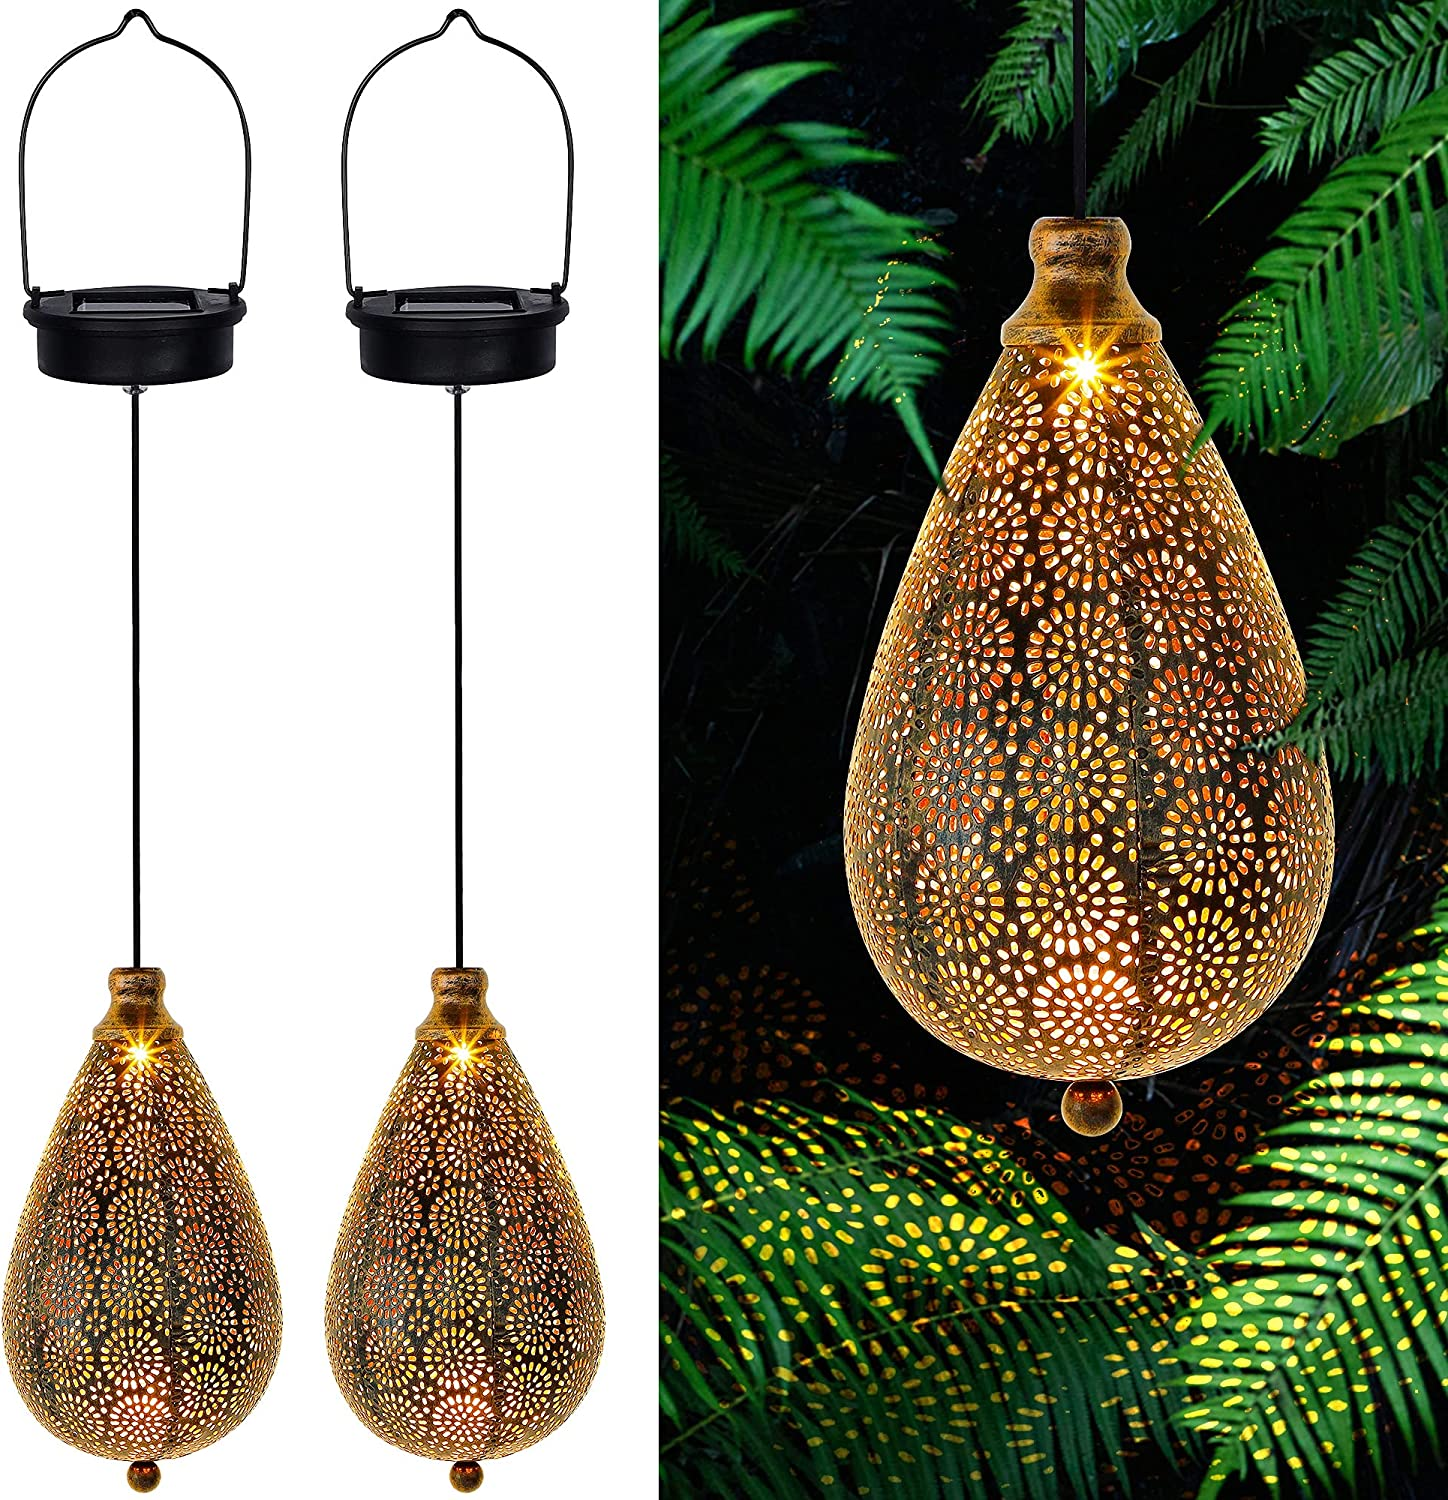 MAGGIFT 2 Pack Solar Hanging Lights, Solar Powered Decorative Retro Lantern with Handle, Warm White LED Garden Boho Flower Lights, Metal Drop Shape Lamp Waterproof for Outdoor Yard Tree Fence Patio